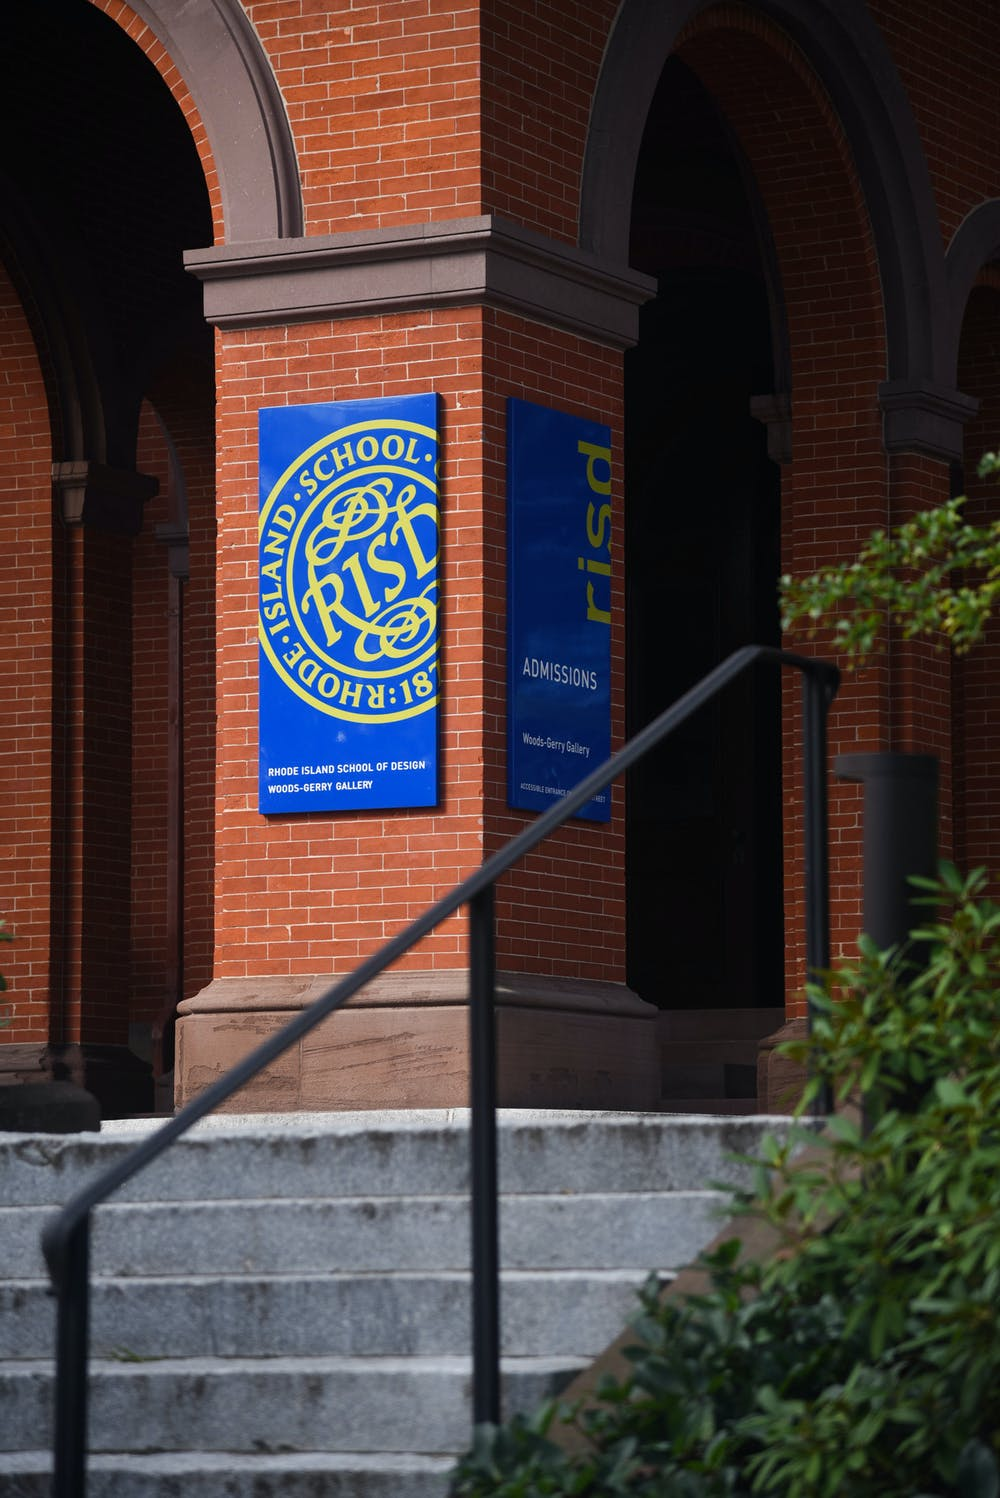 <p>Obstacles that deter Brown and RISD students from cross-registration include differing academic calendars, lack of space in classes, prerequisites and associated supply costs.</p>